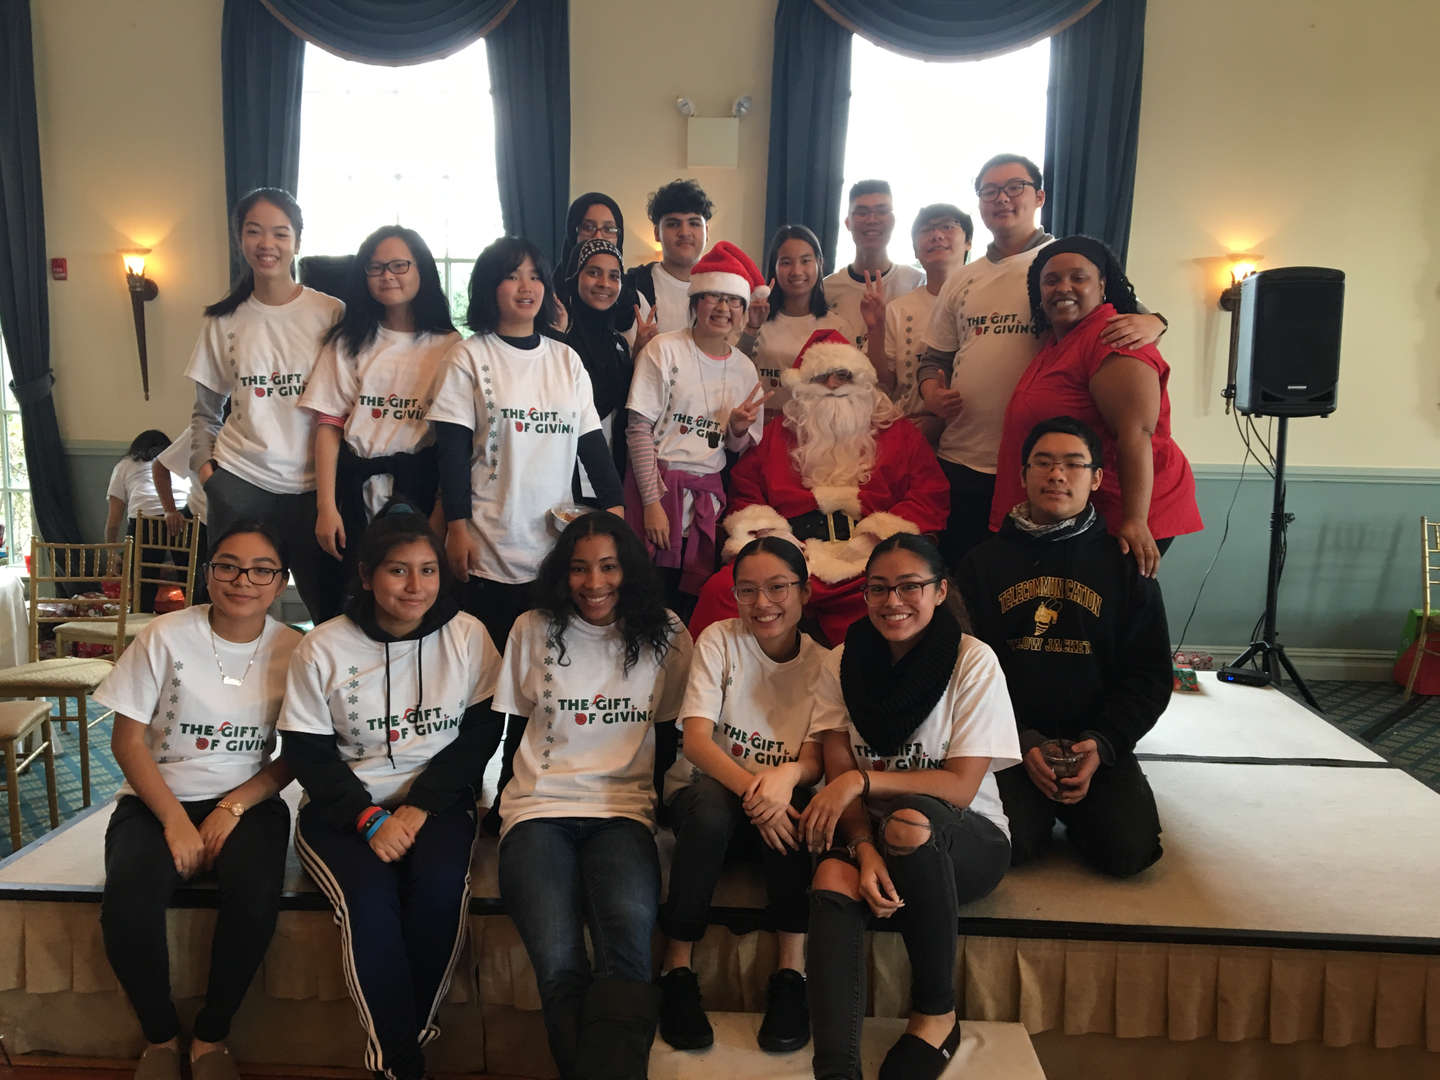 The student government with Santa at the Gift of Giving event